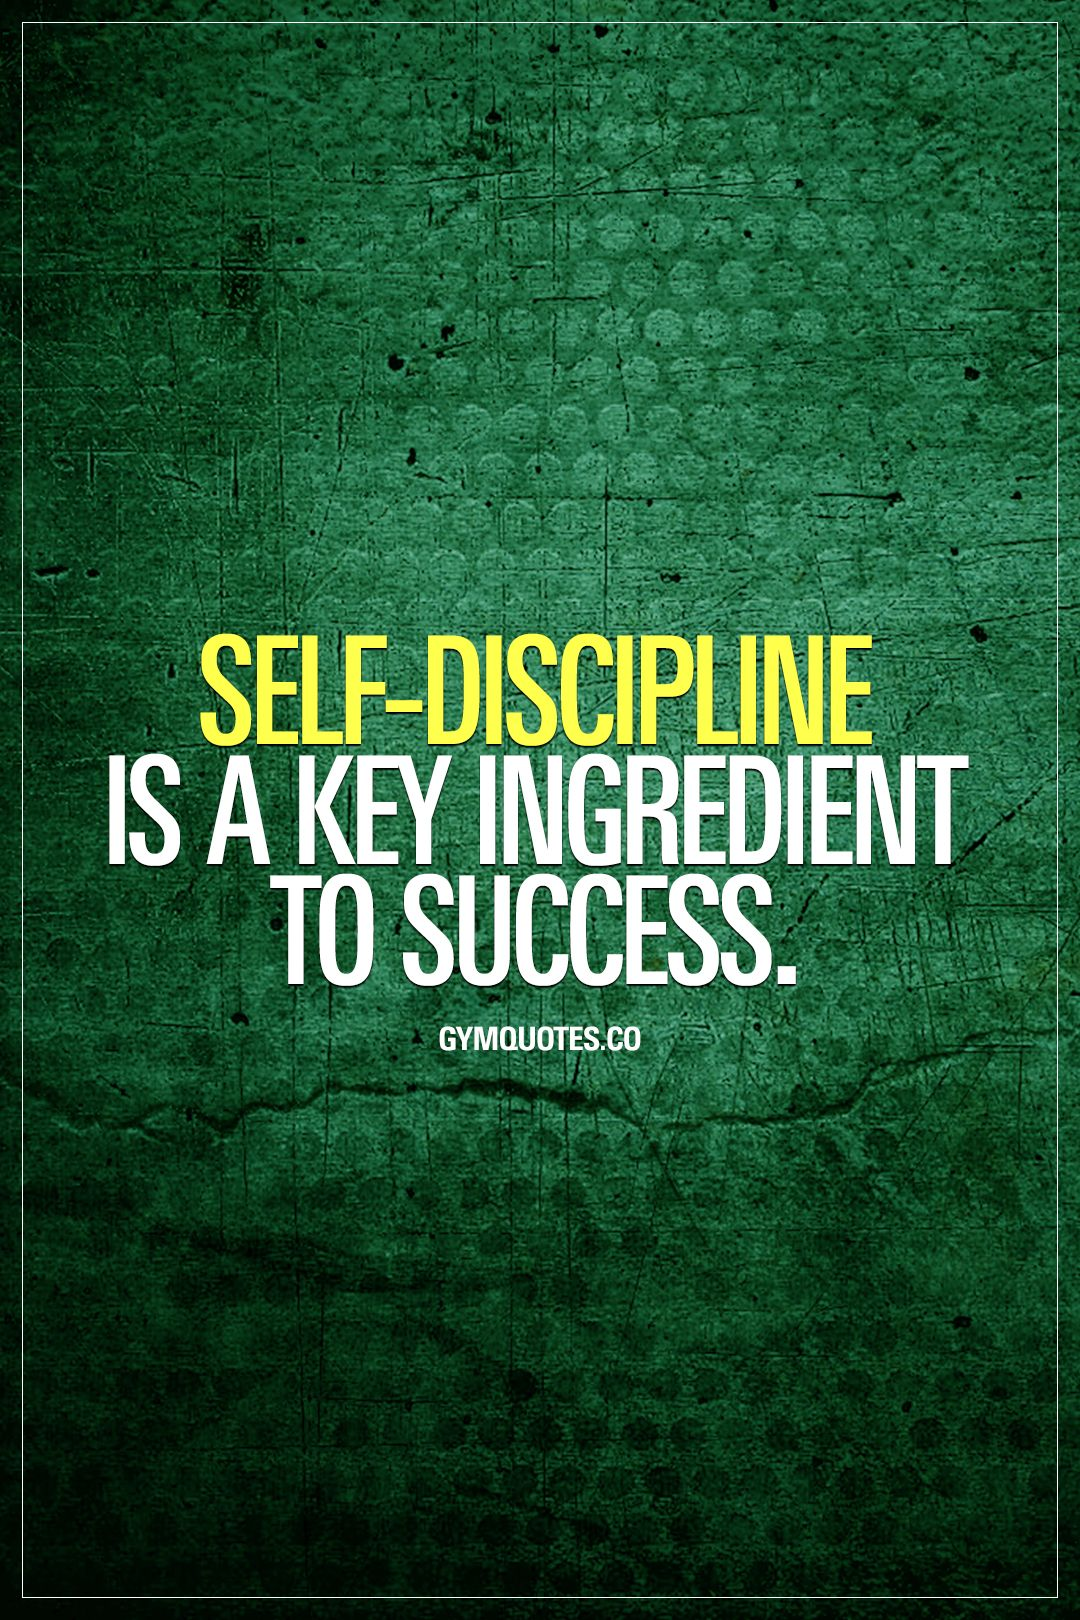 Gym Quotes   Workout, Gym And Fitness Motivation And Inspiration!